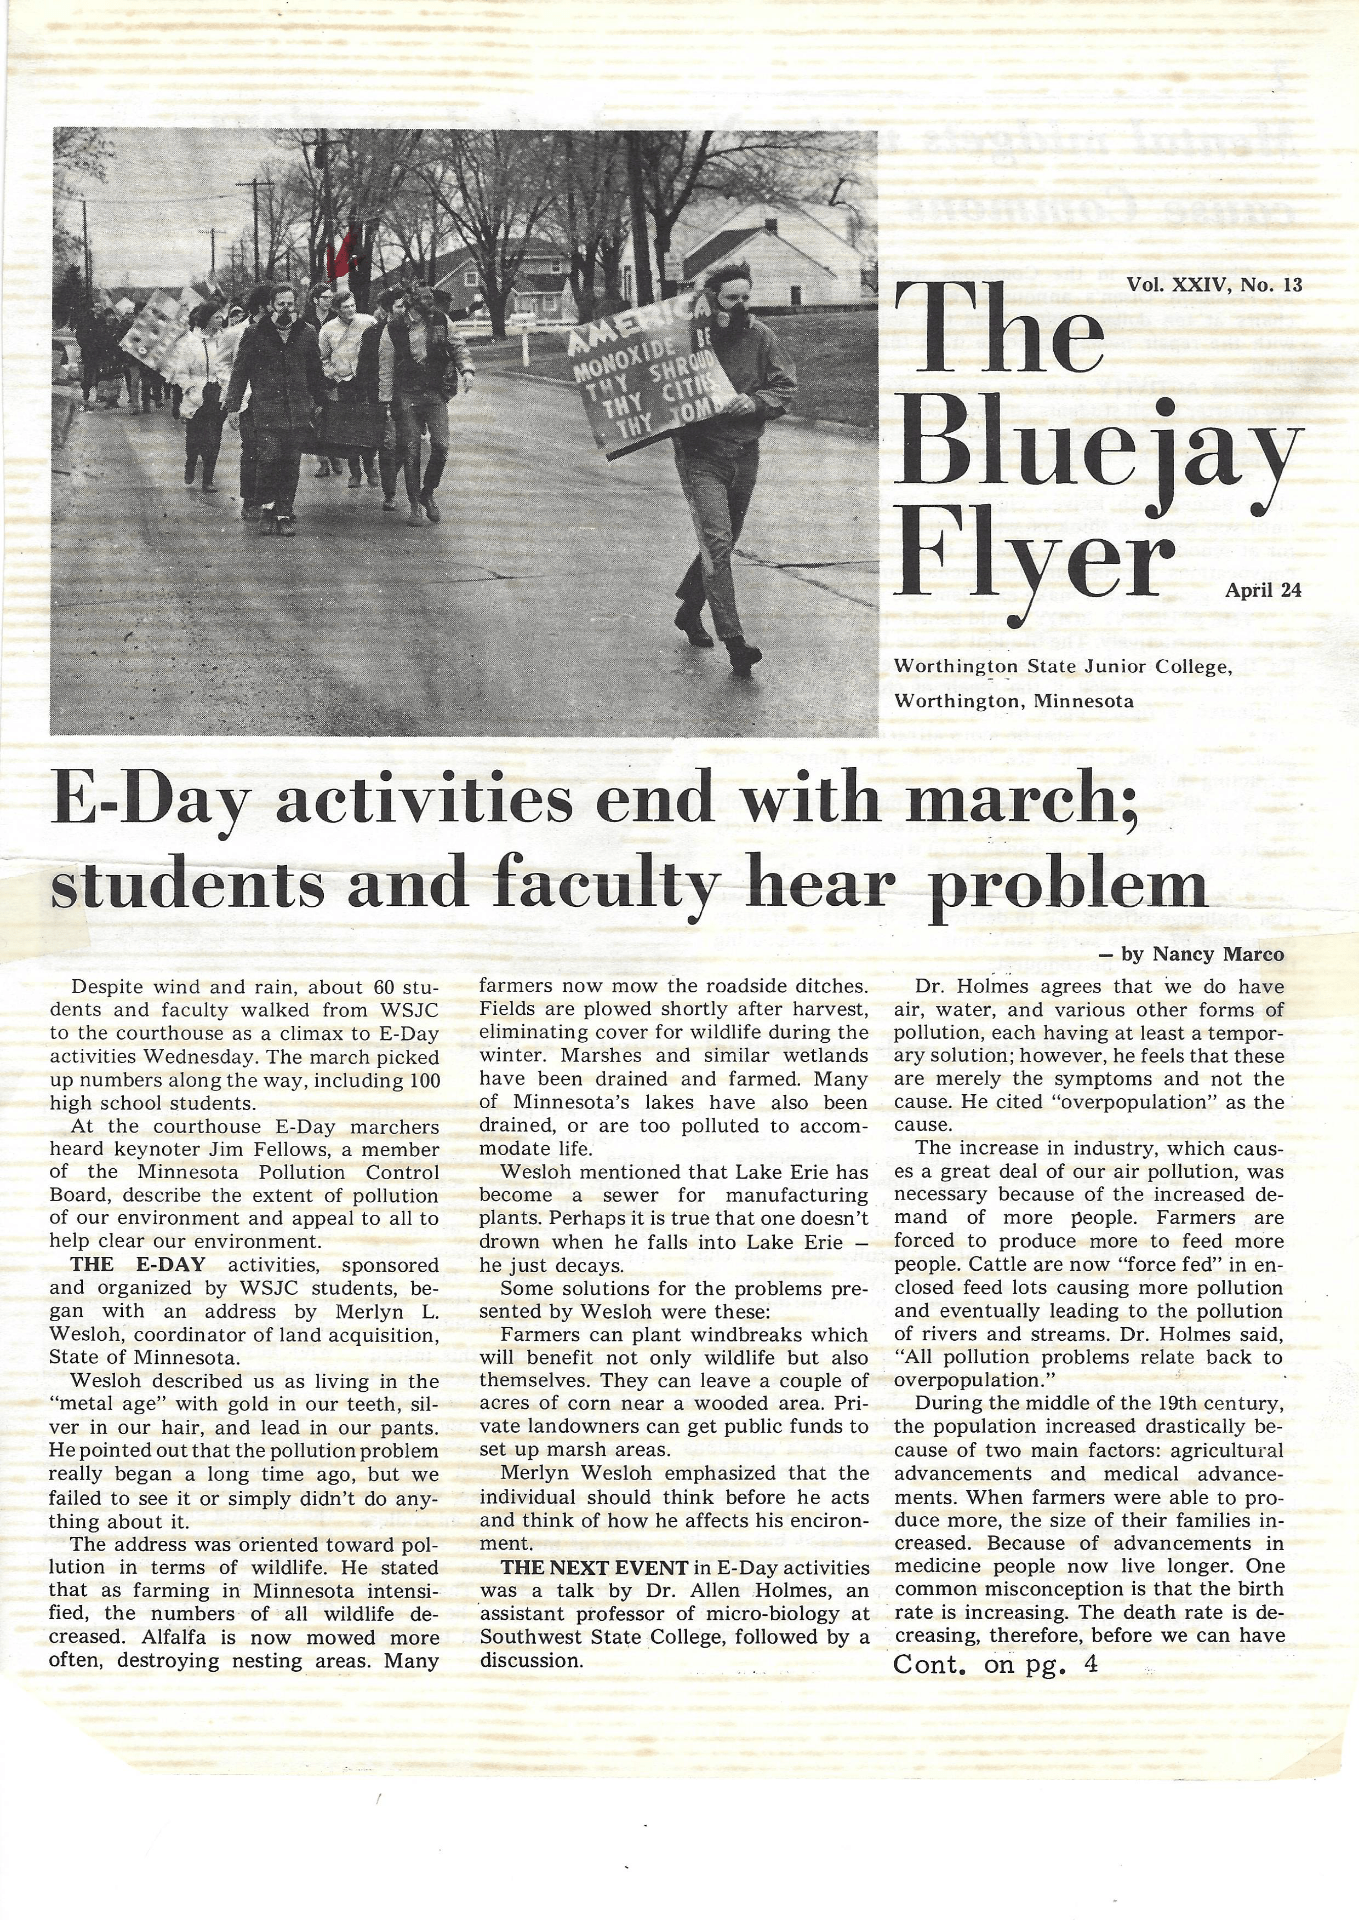 scanned newspaper article about a march on a college campus